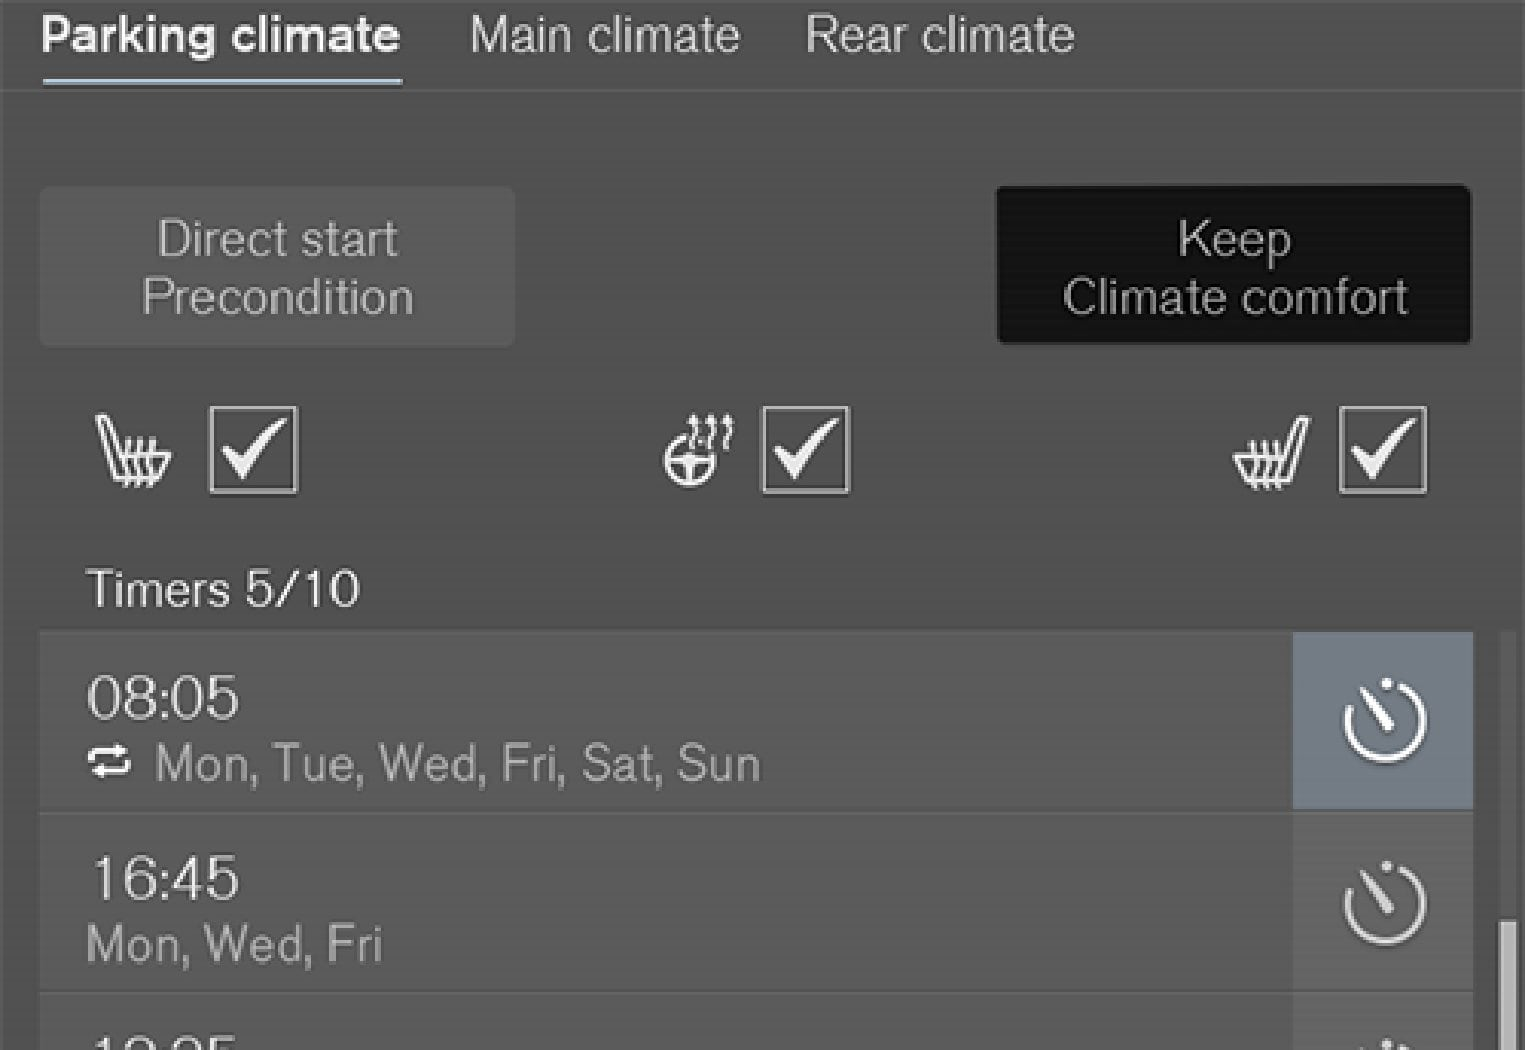 Button for climate comfort retention in the Parking climate  tab in the climate view.